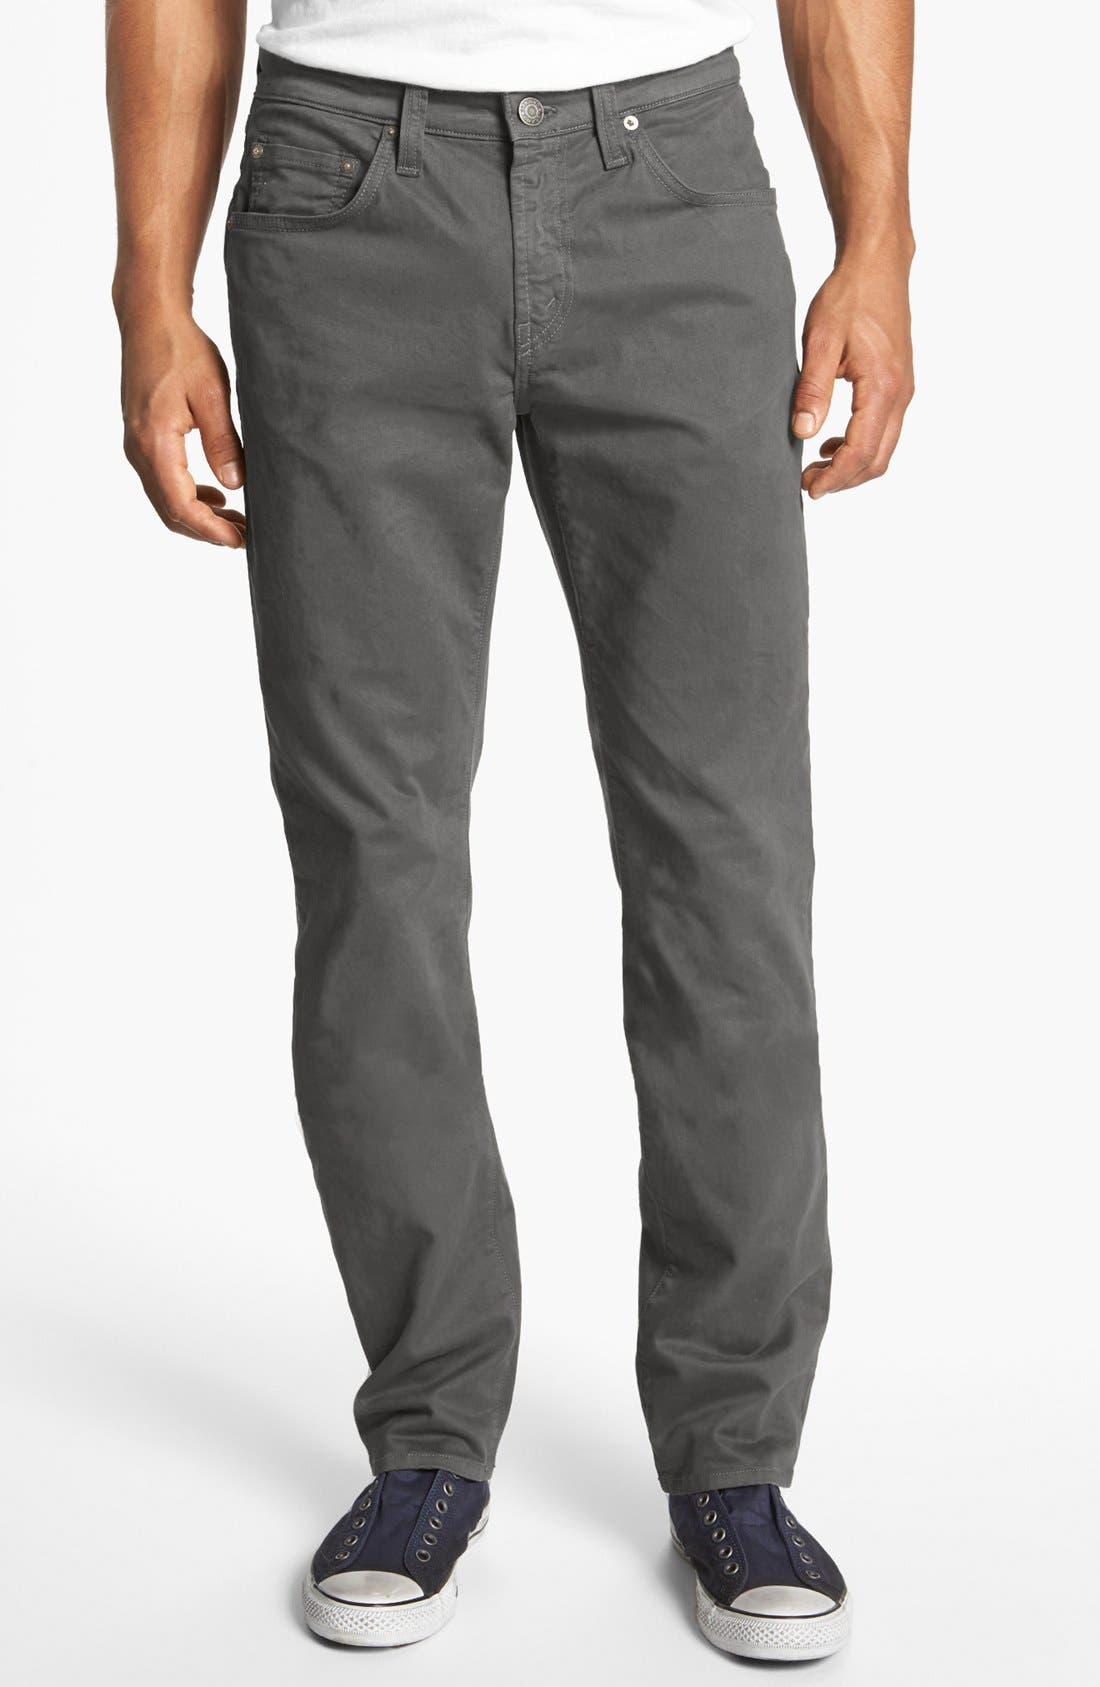 'Kane' Slim Fit Cotton Twill Pants,                             Main thumbnail 1, color,                             Industrial